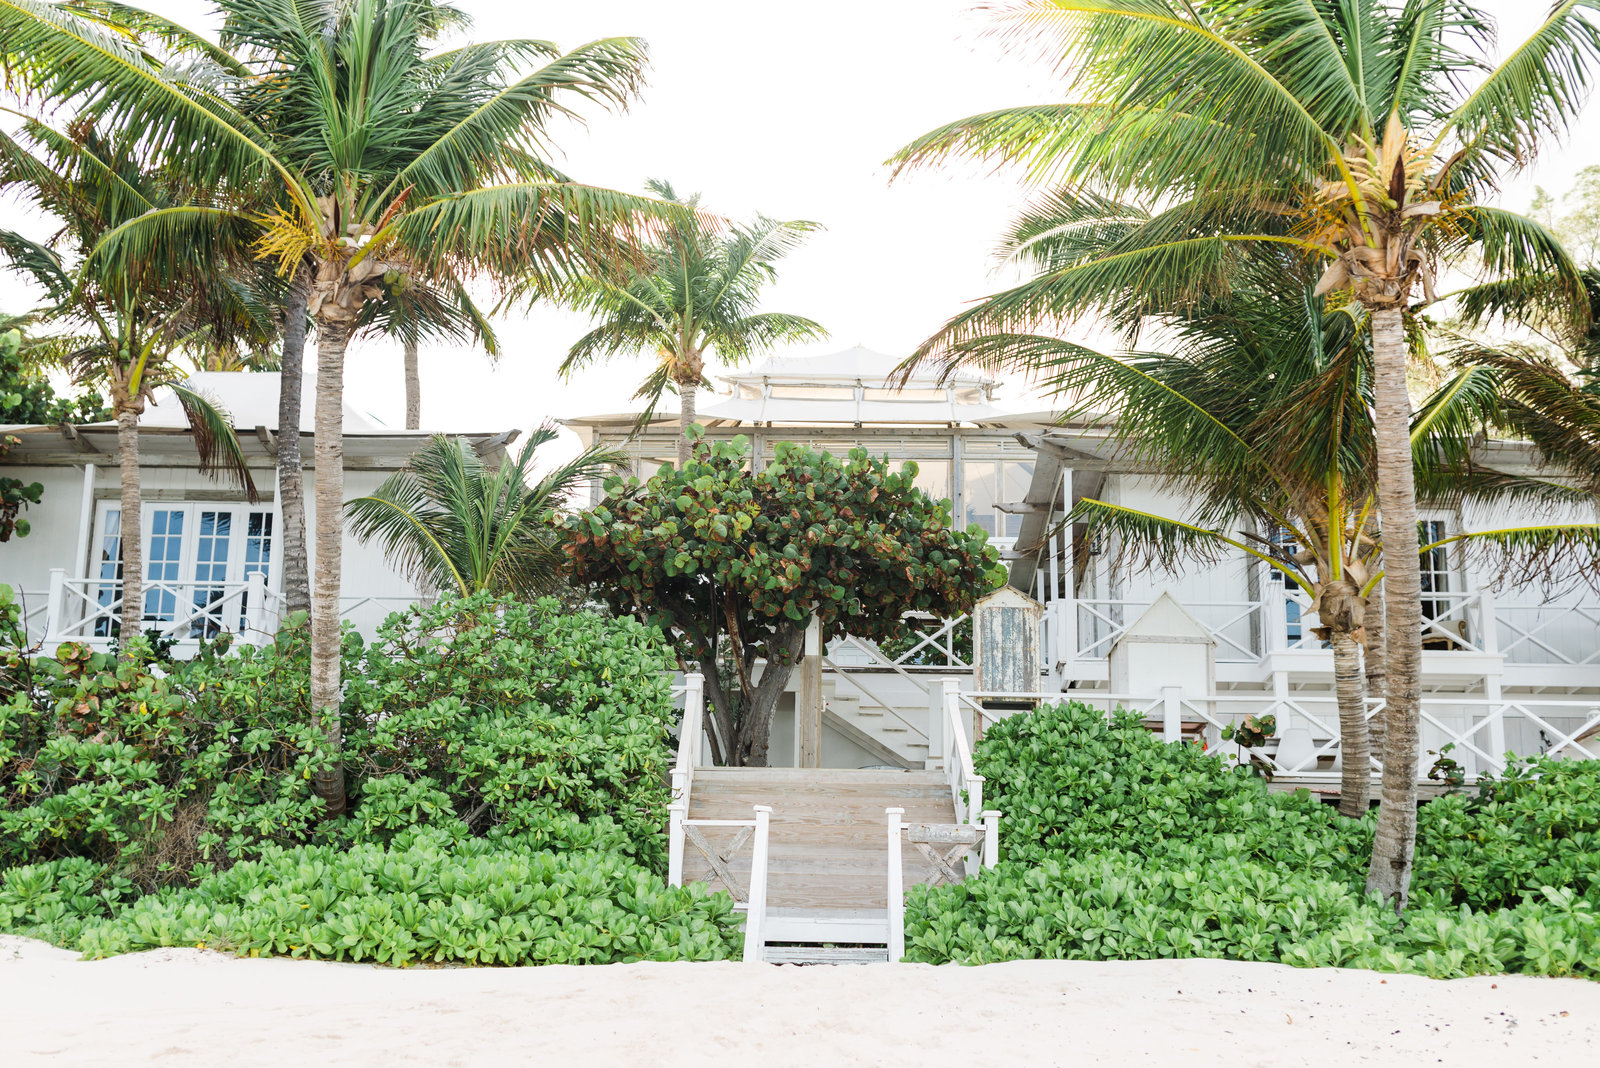 20171112-Pura-Soul-Photo-lindsay-clay-bahamas-wedding-7